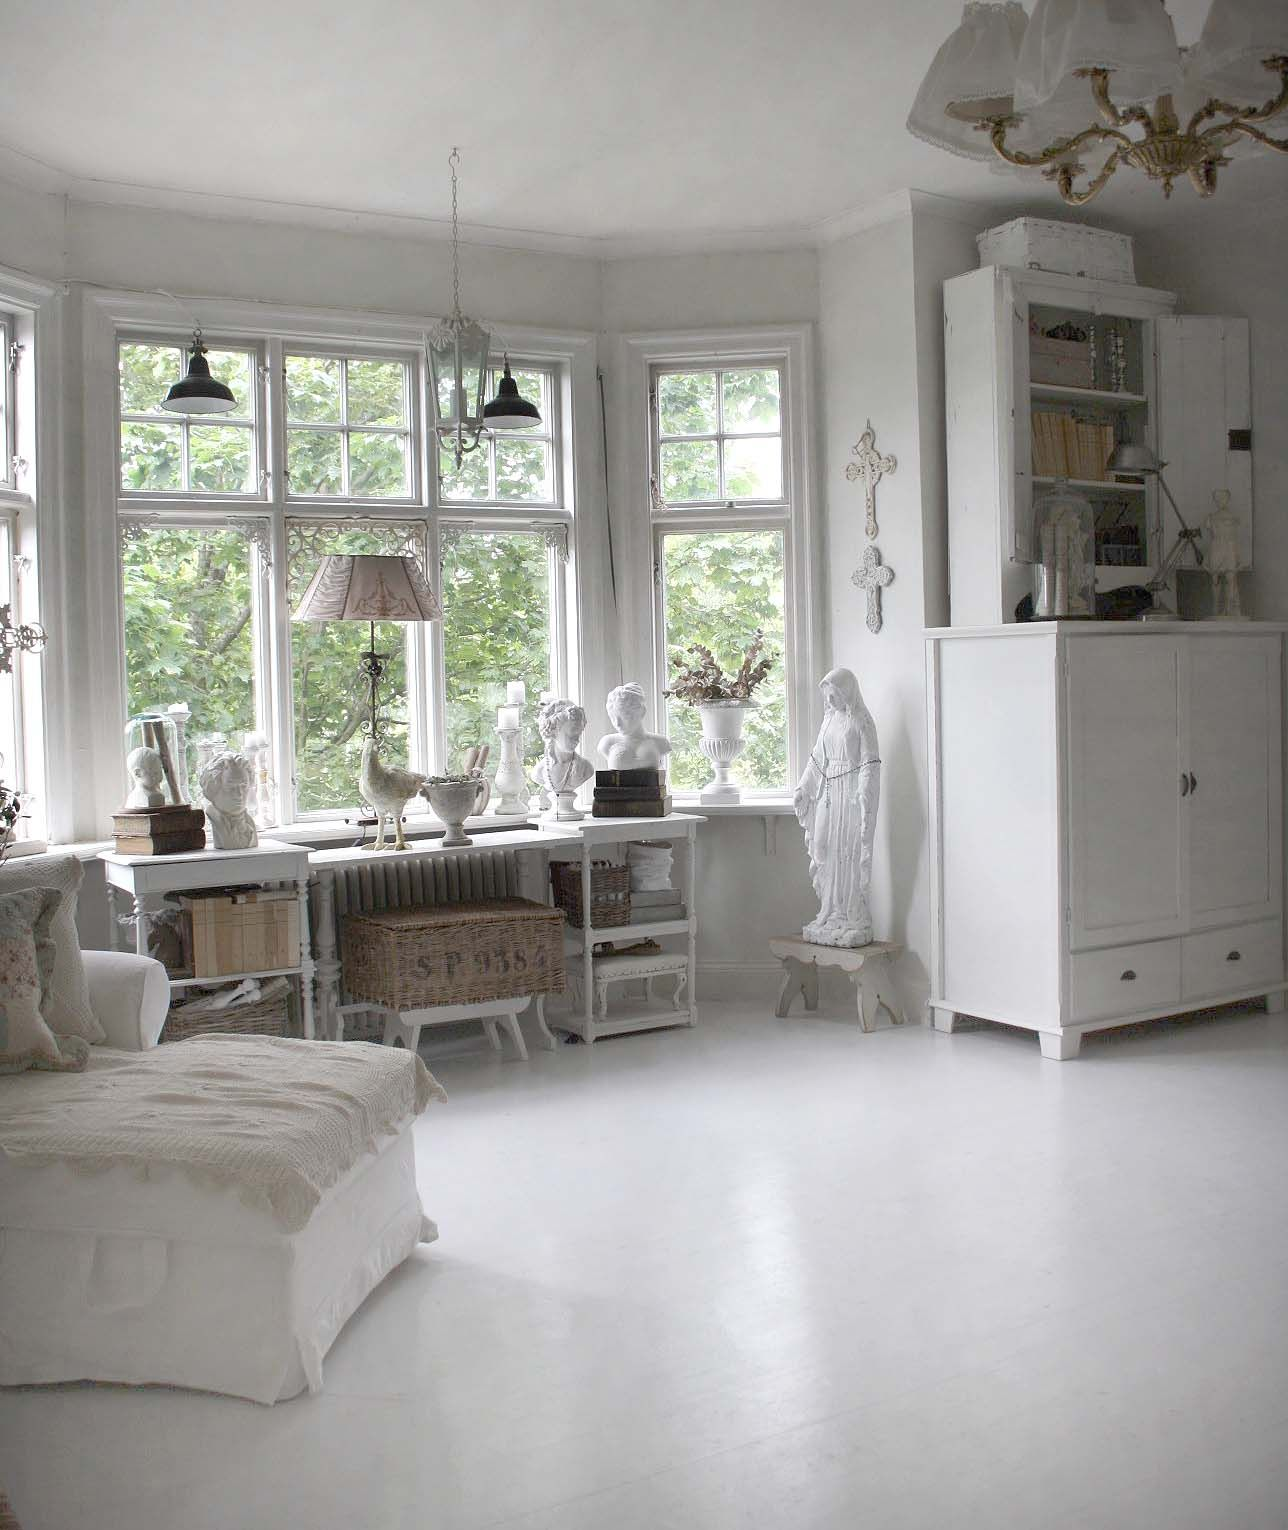 Relaterad bild | My style | Pinterest | Shabby chic living room ...